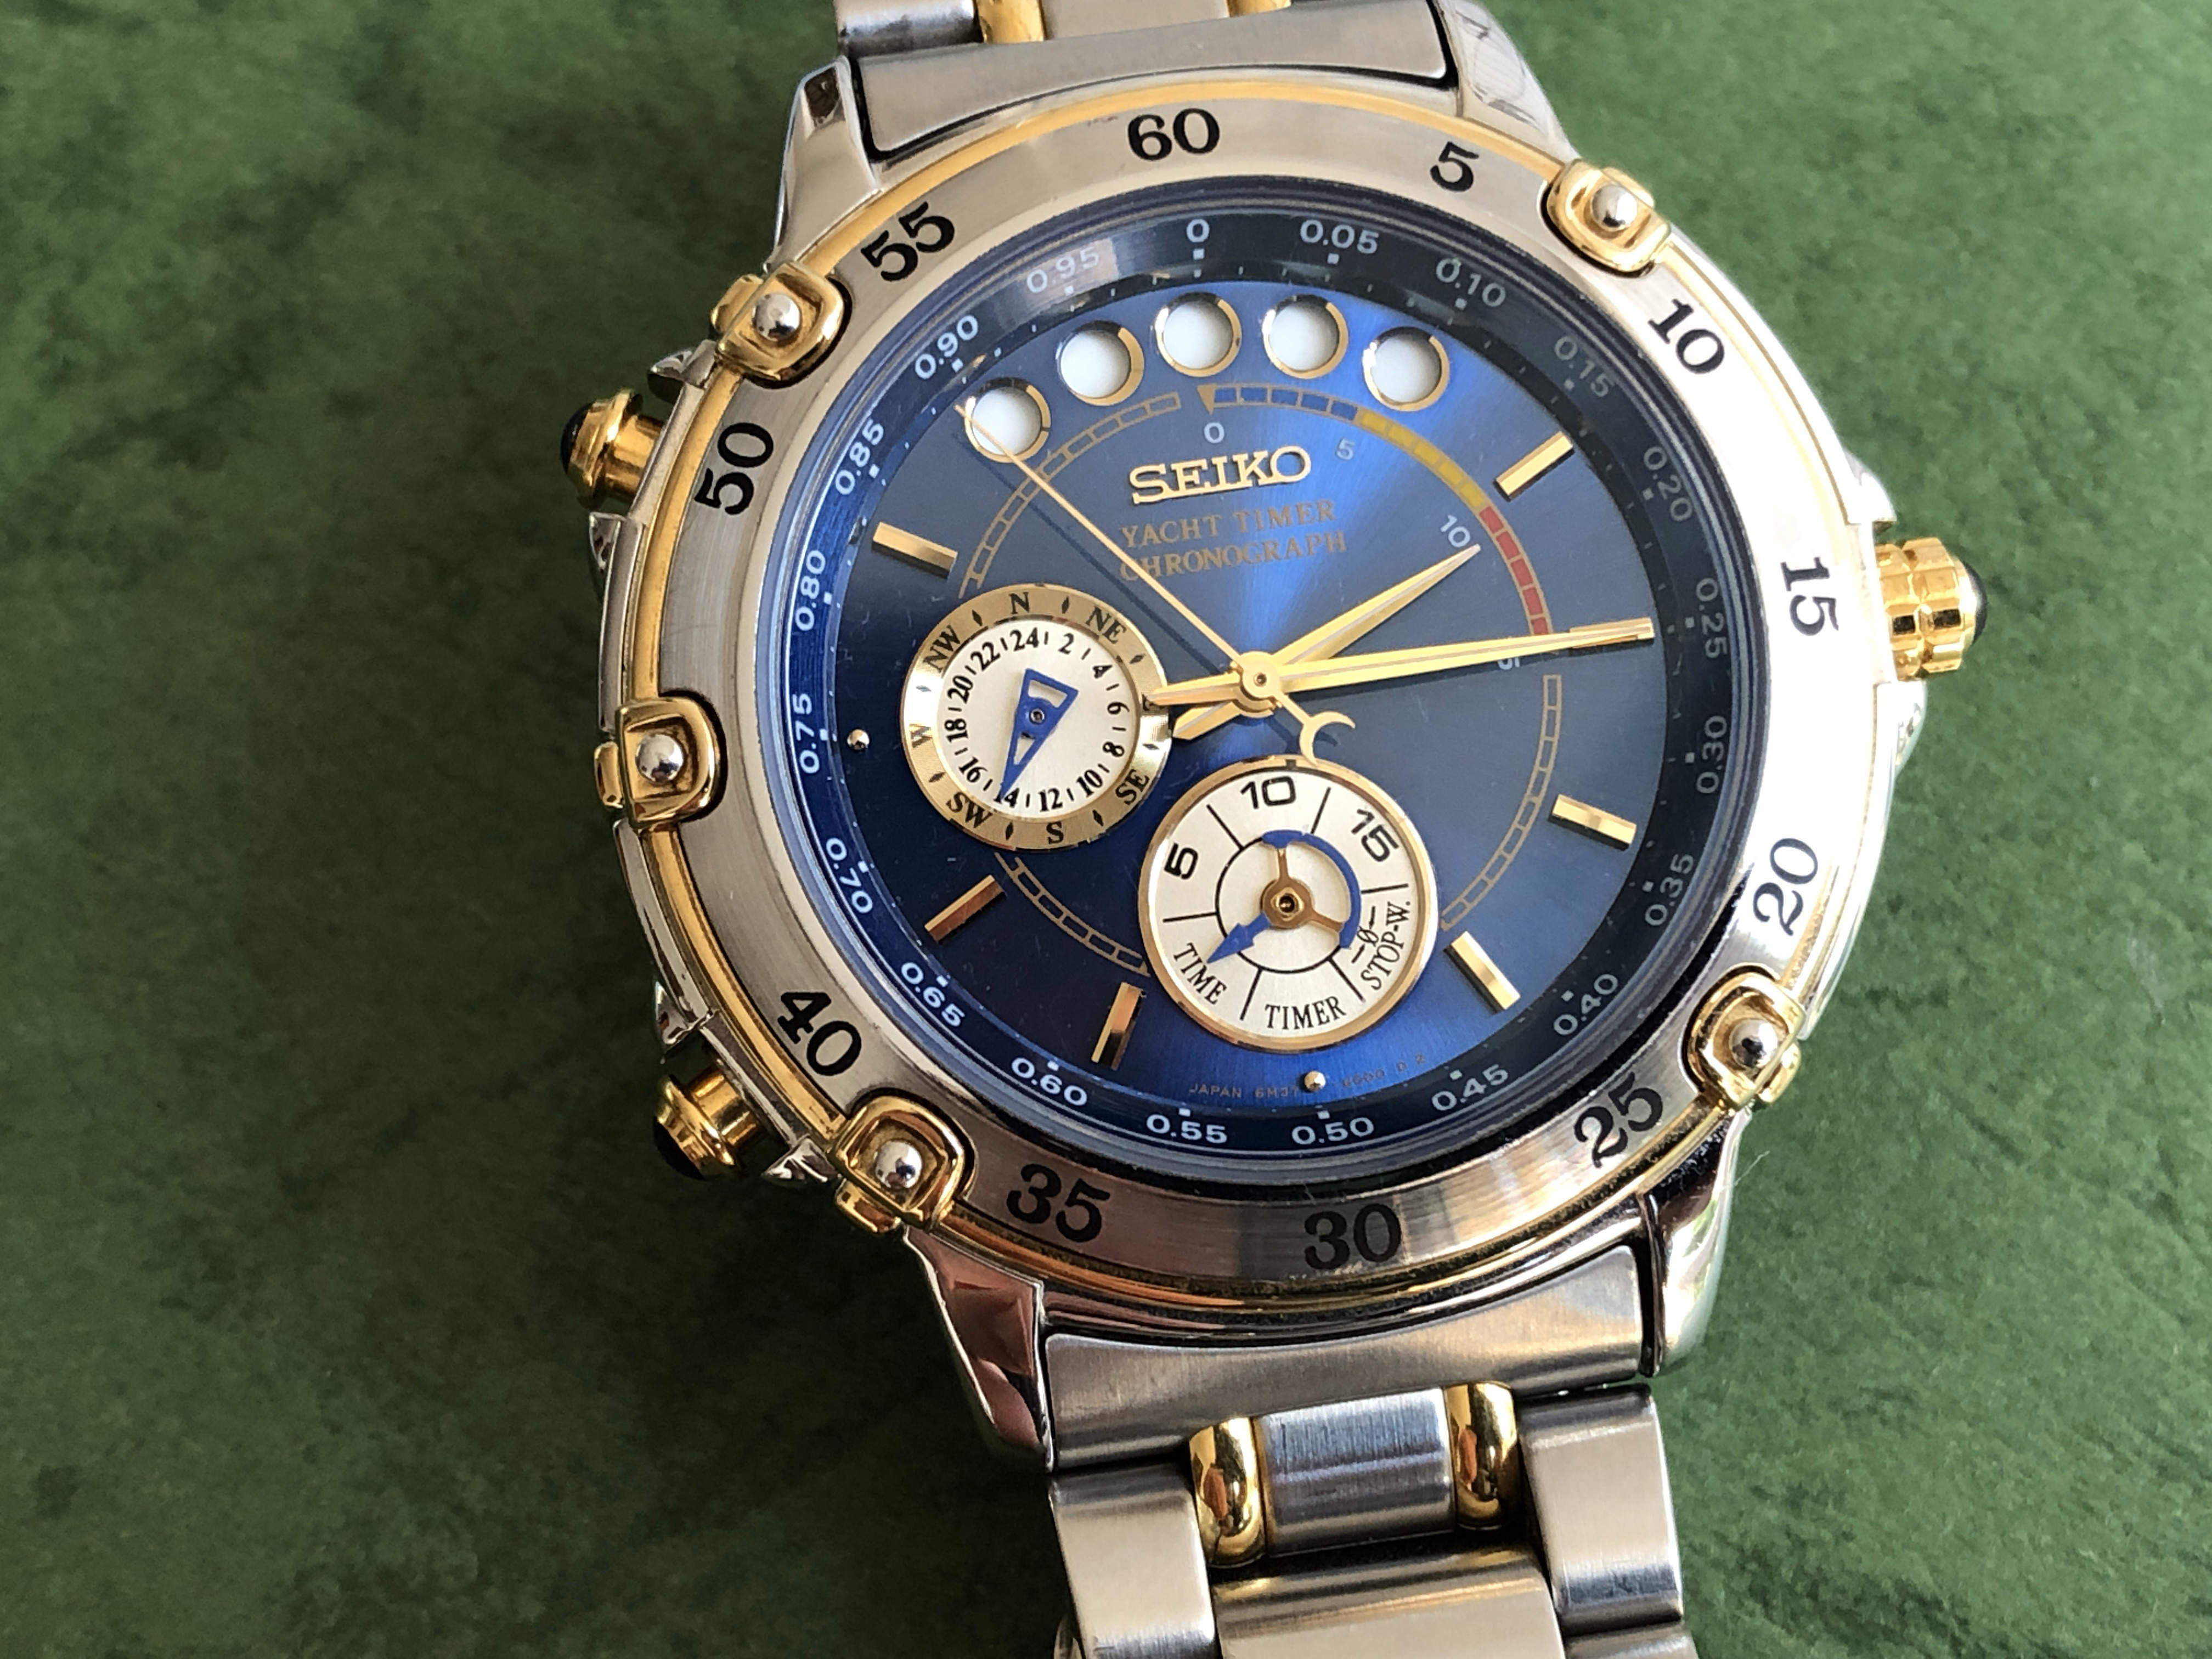 Seiko Yacht Timer 6M37-6000 SBDC001 (For sale)